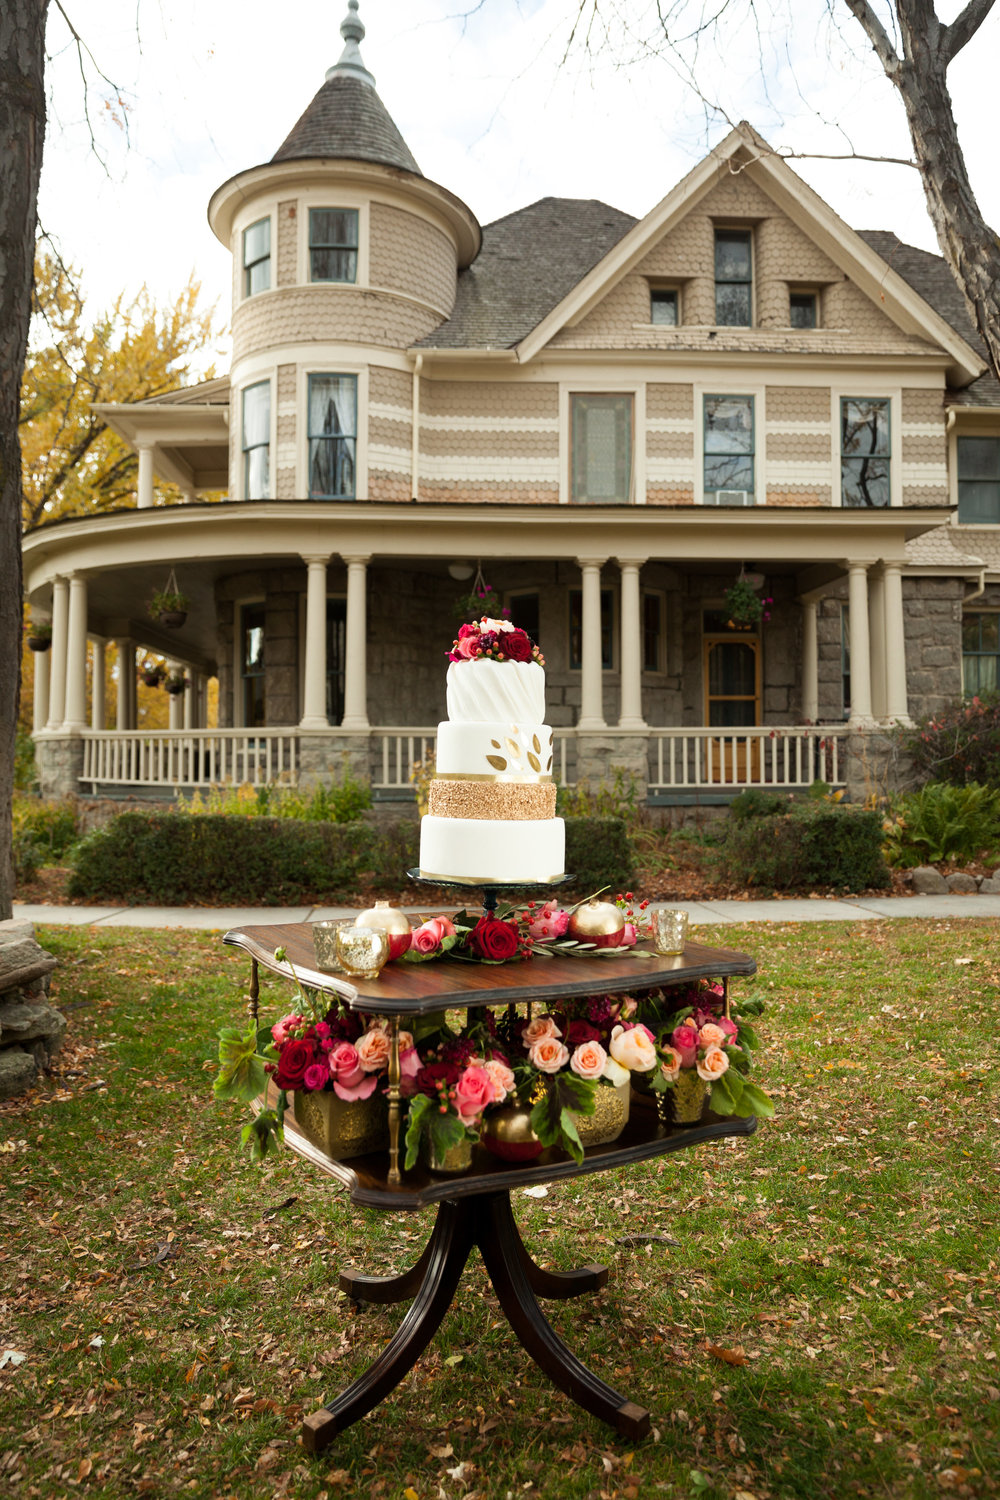 The Bishops' House 2420 Old Penitentiary Rd. Boise ID 83712 208) 342-3279 thebishopshouse.com